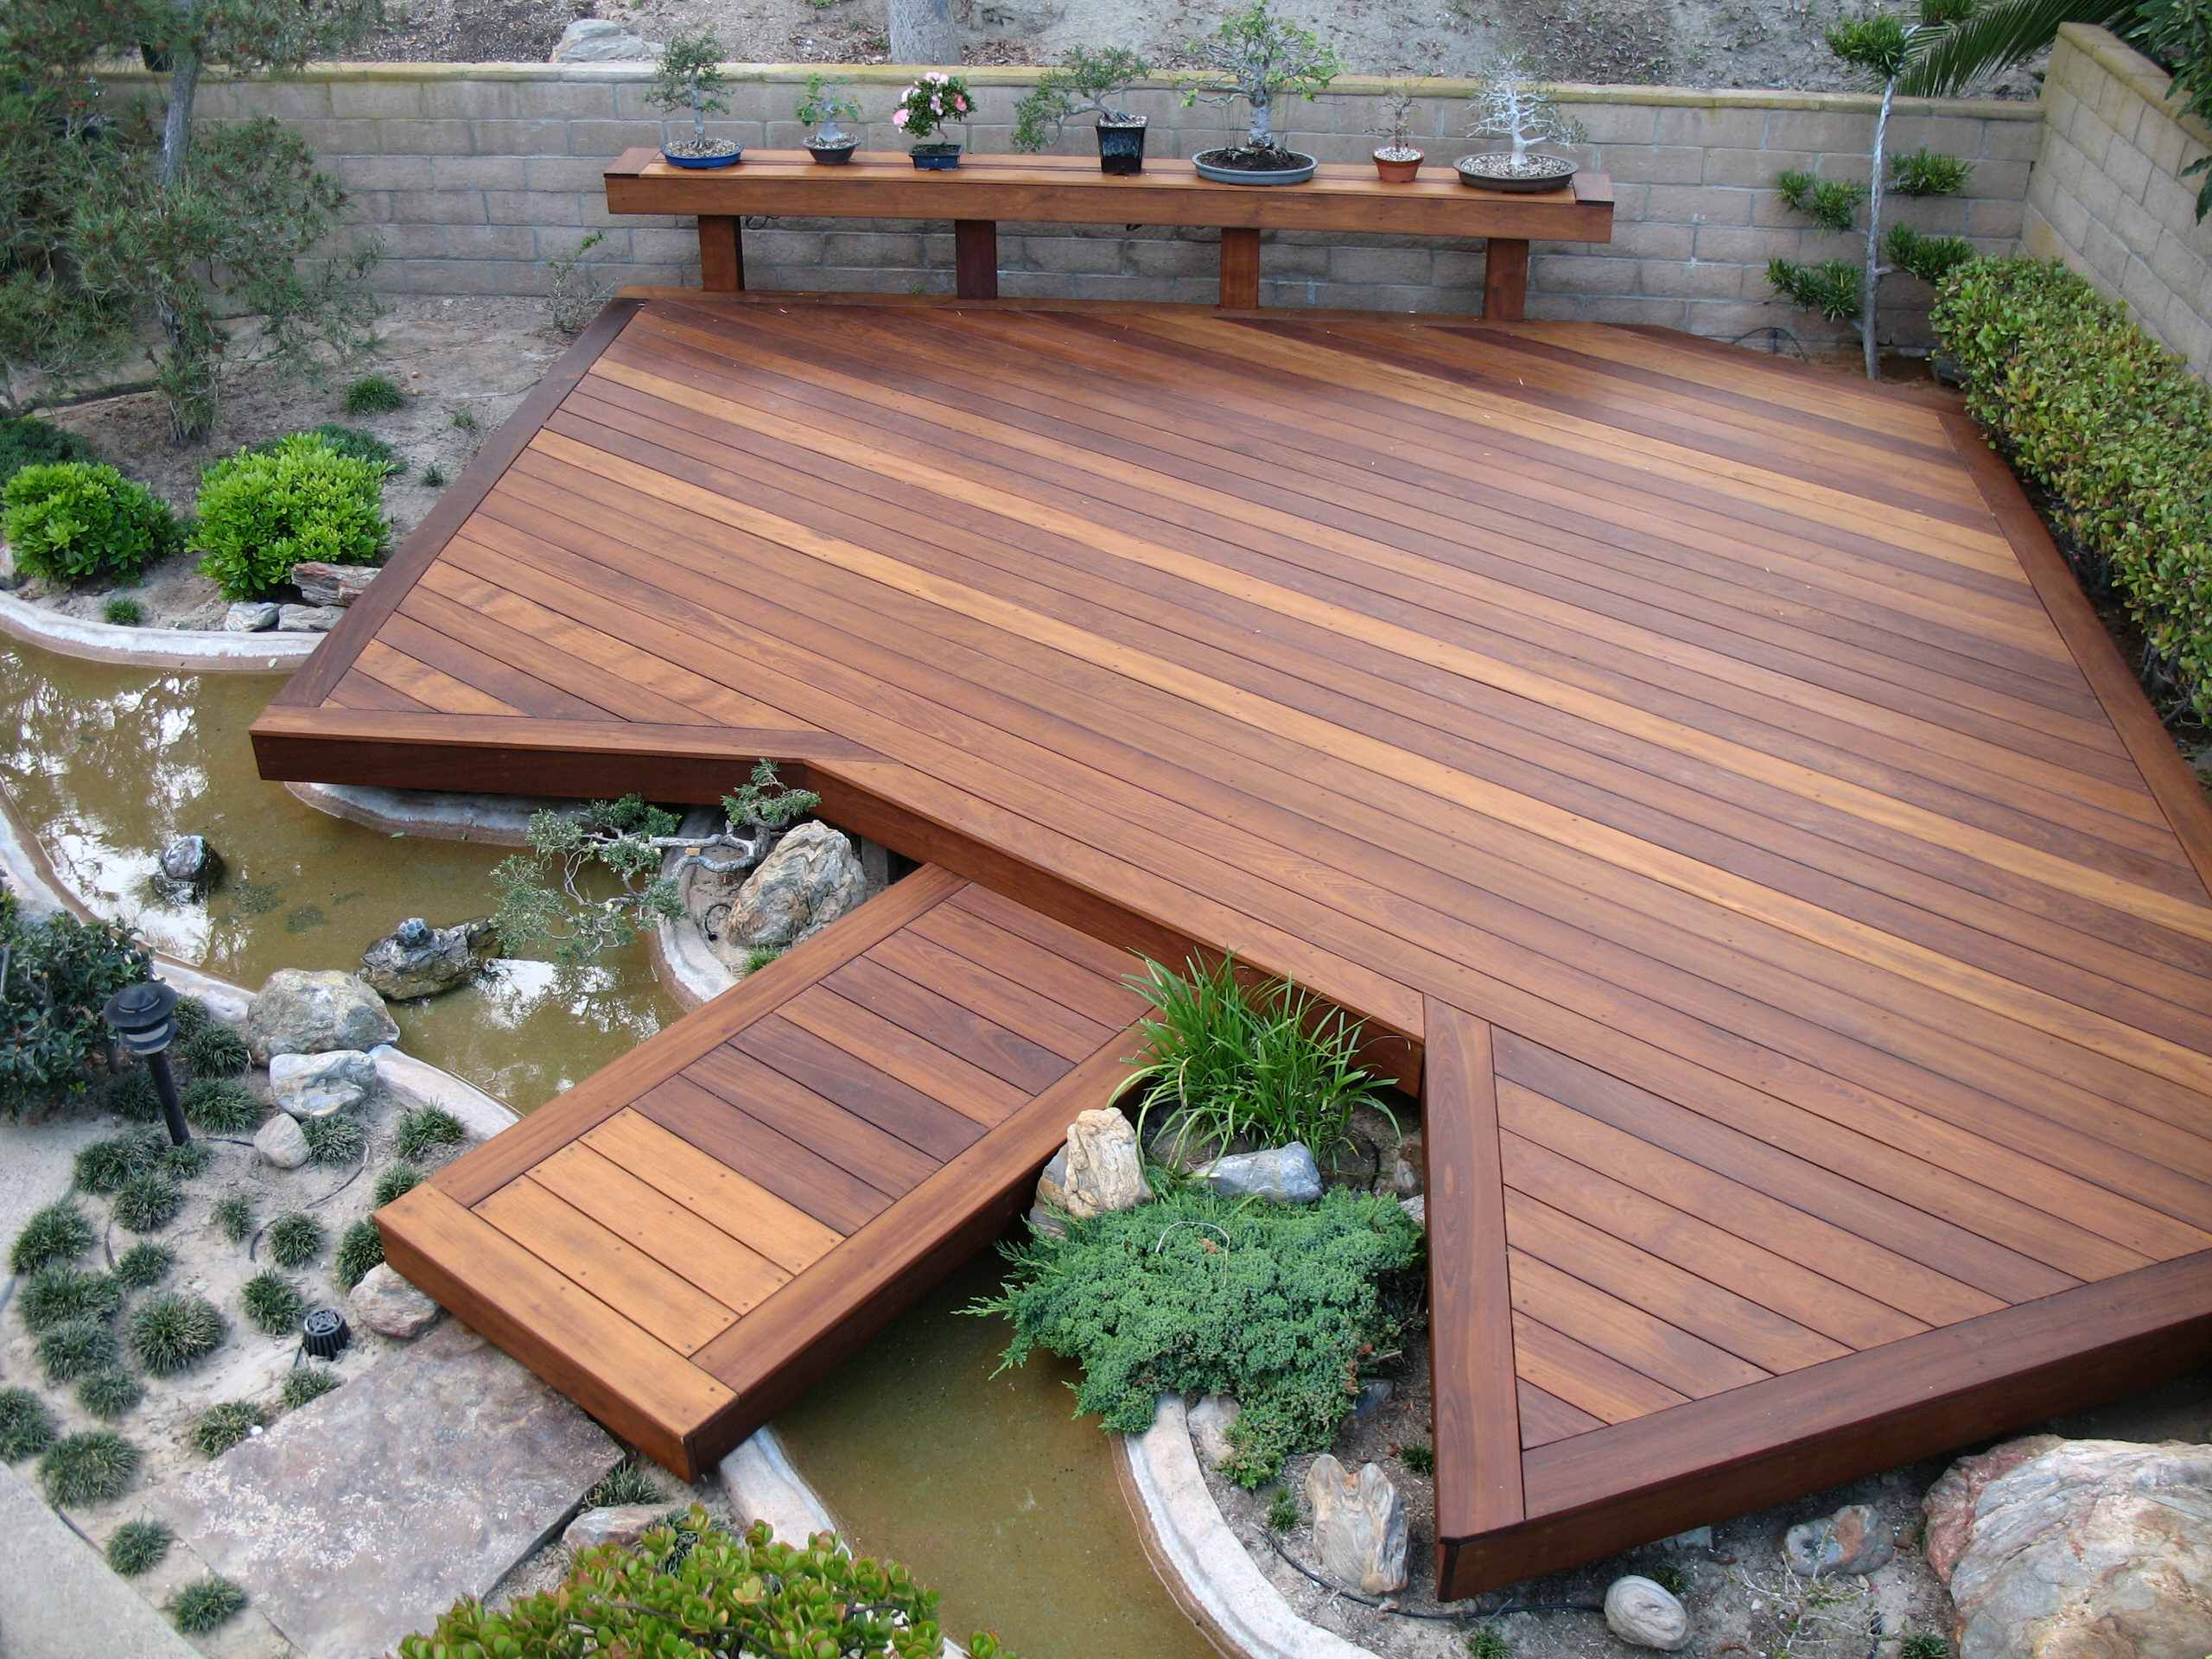 Asian Inspired Garden With Ipe Decks And Built In Small River Plus - Ipe outdoor furniture